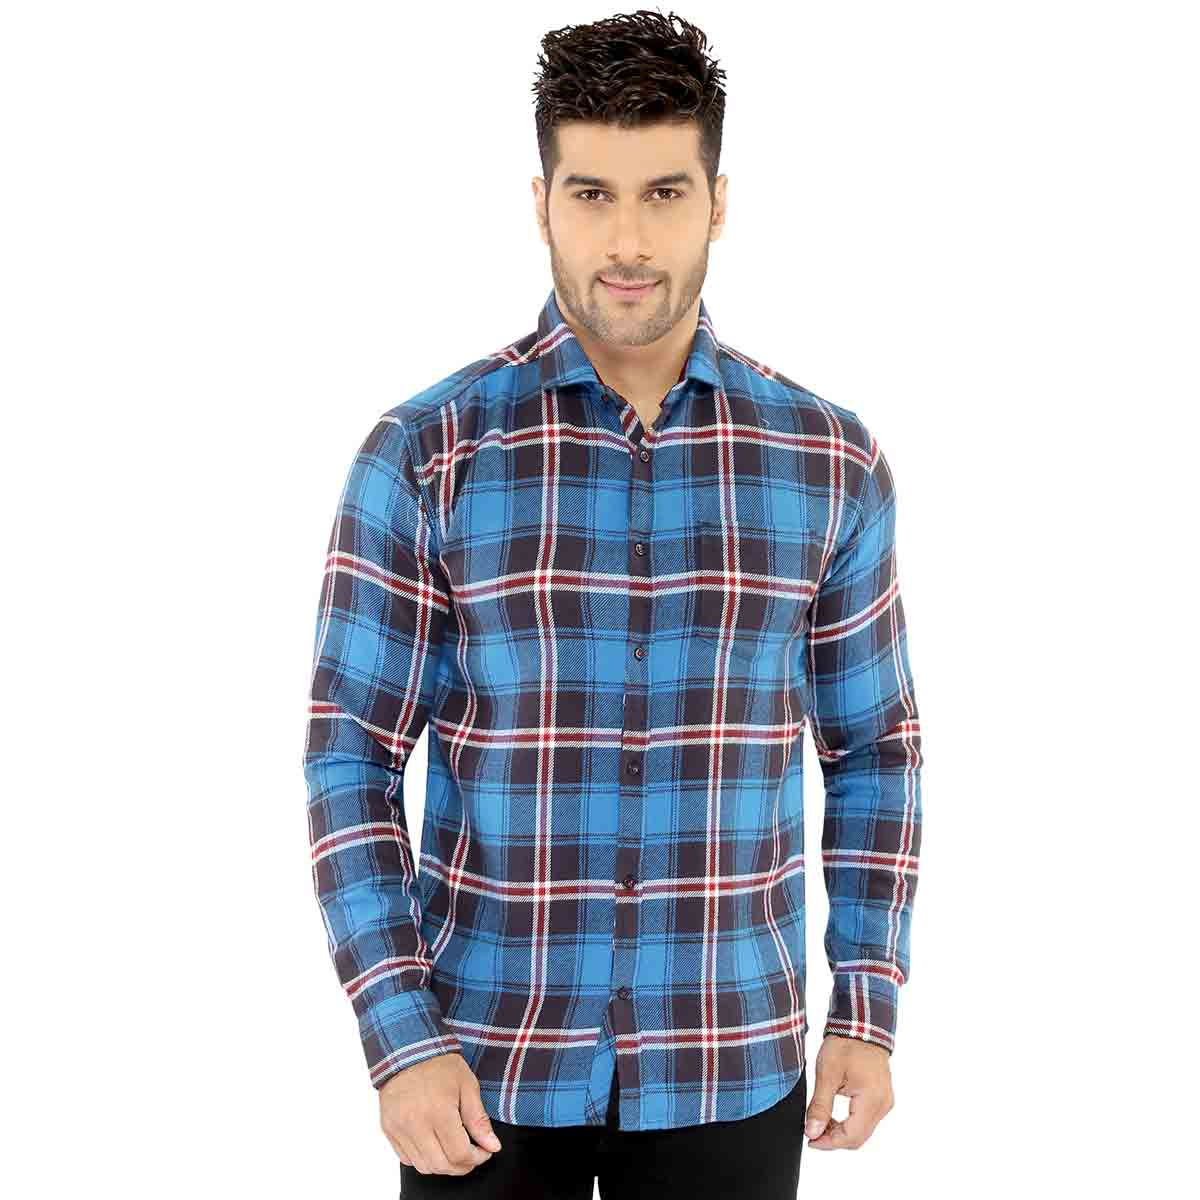 Blue & Black Checks Casual Shirt - 10500